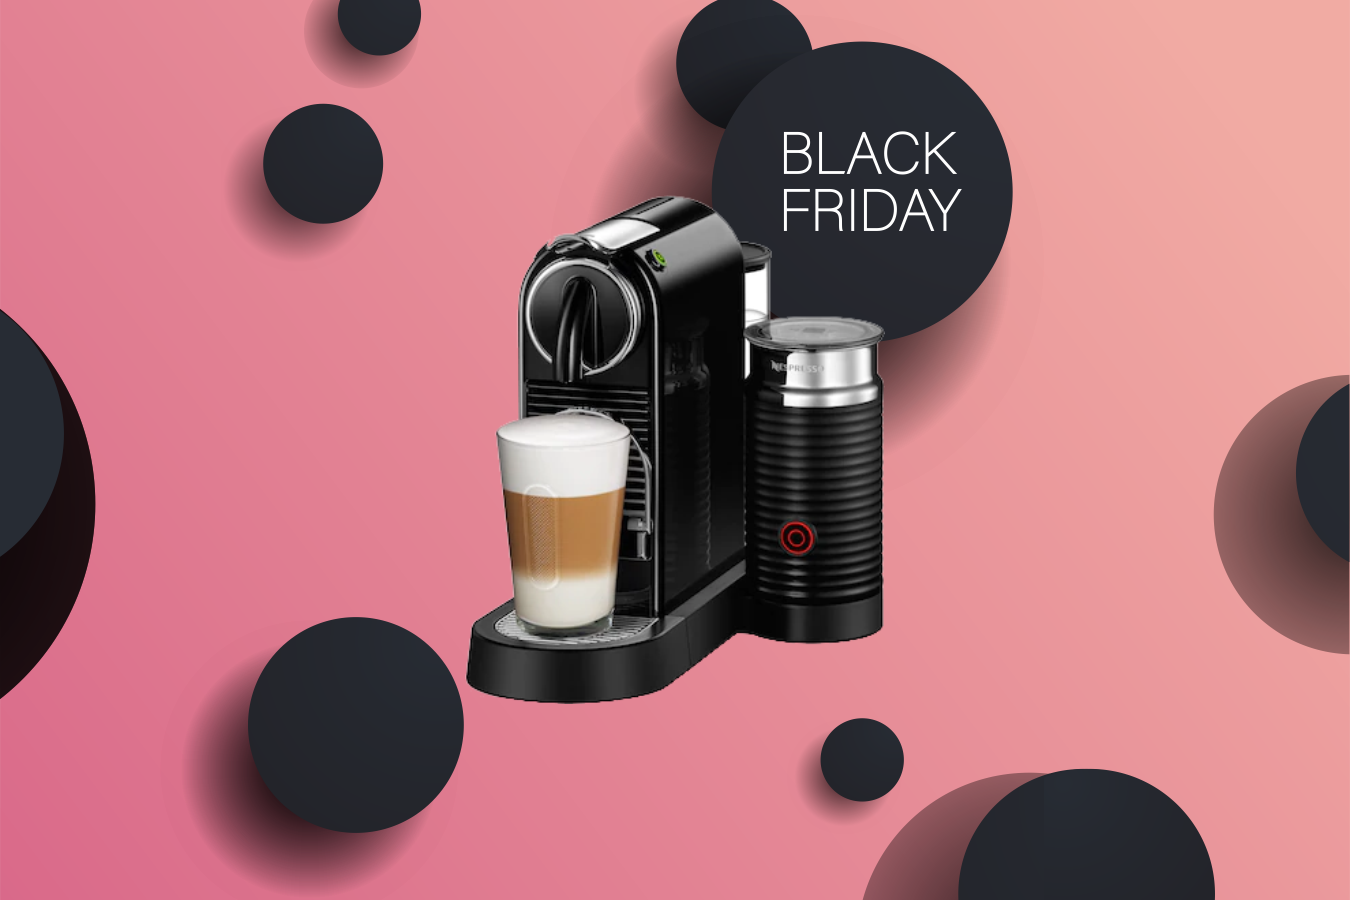 Black Friday Is The Best To Get A Nespresso Machine Between Carpools